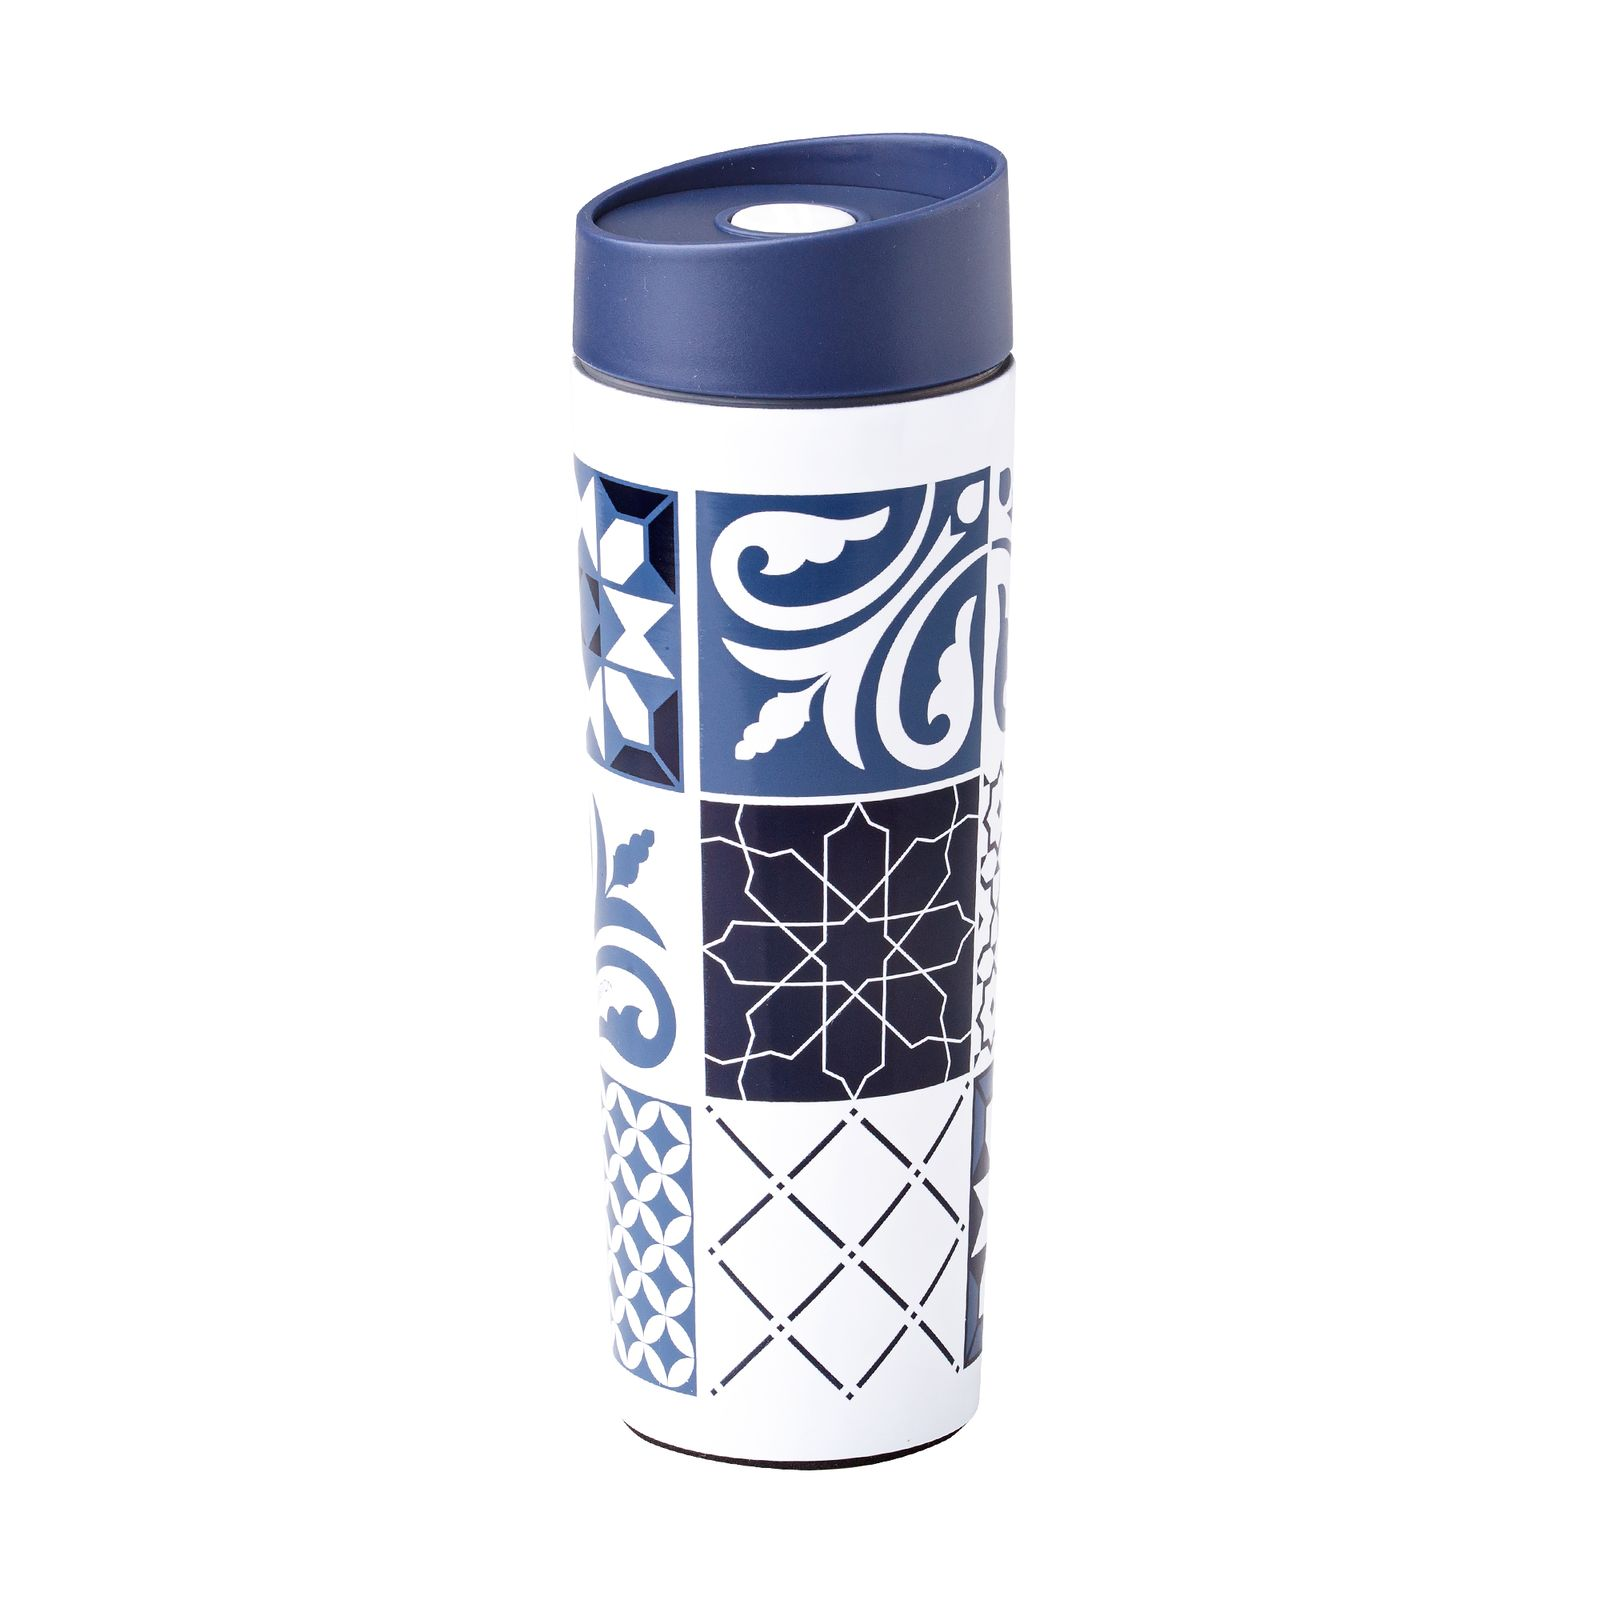 Tasse isotherme Marocco carrelage 34 cl AMBITION